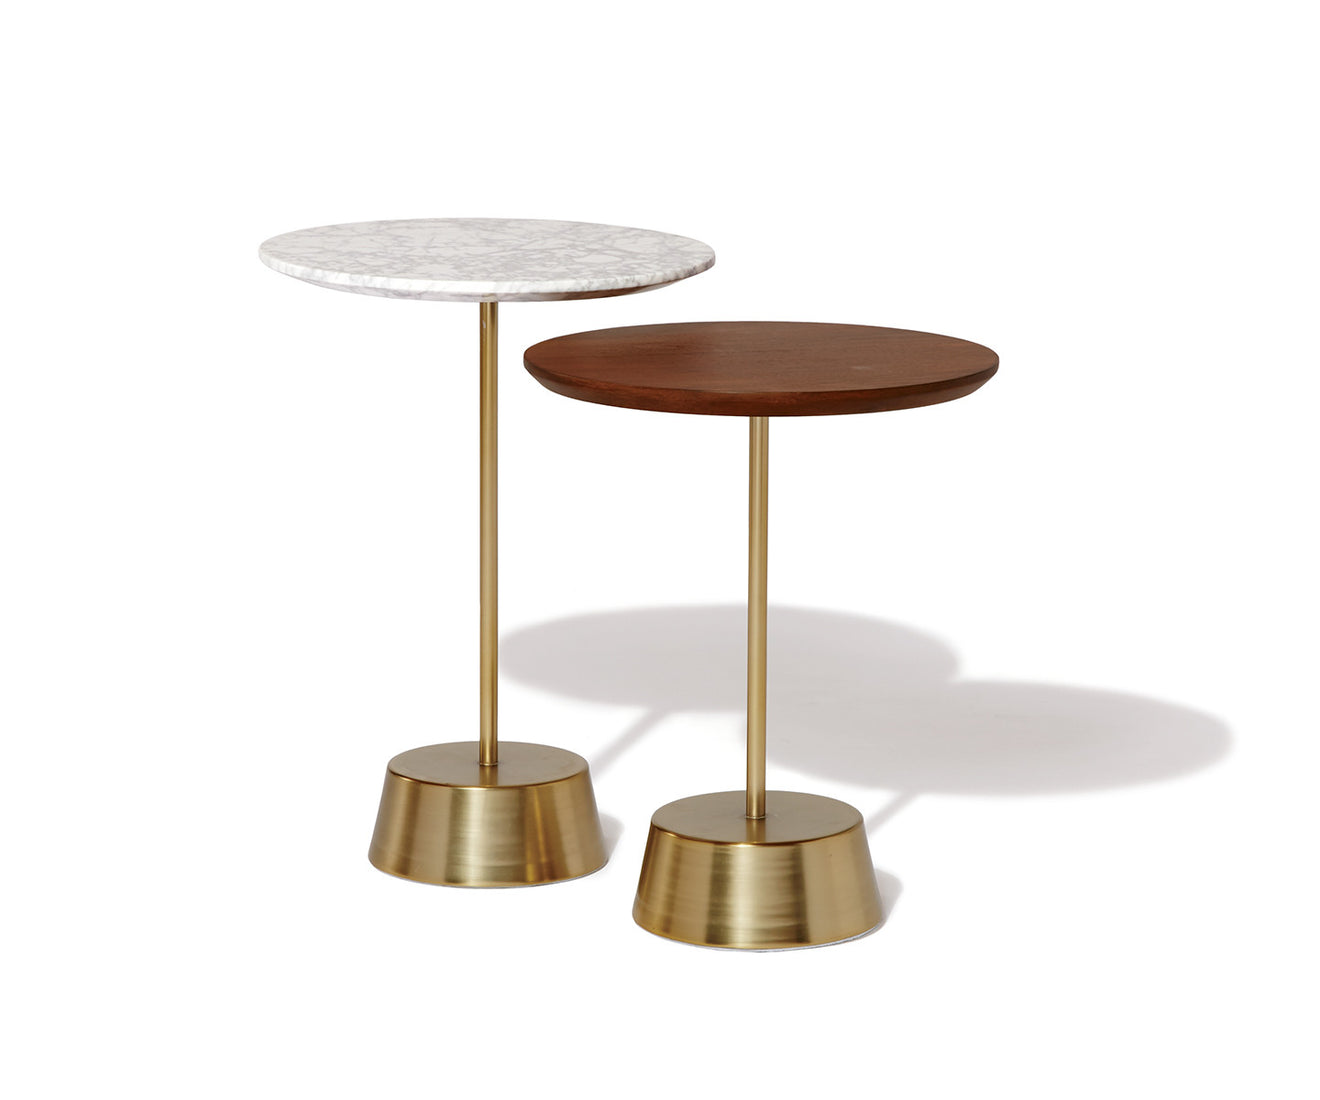 Maisie Side Tables West Elm WORKSPACE - West elm maisie side table